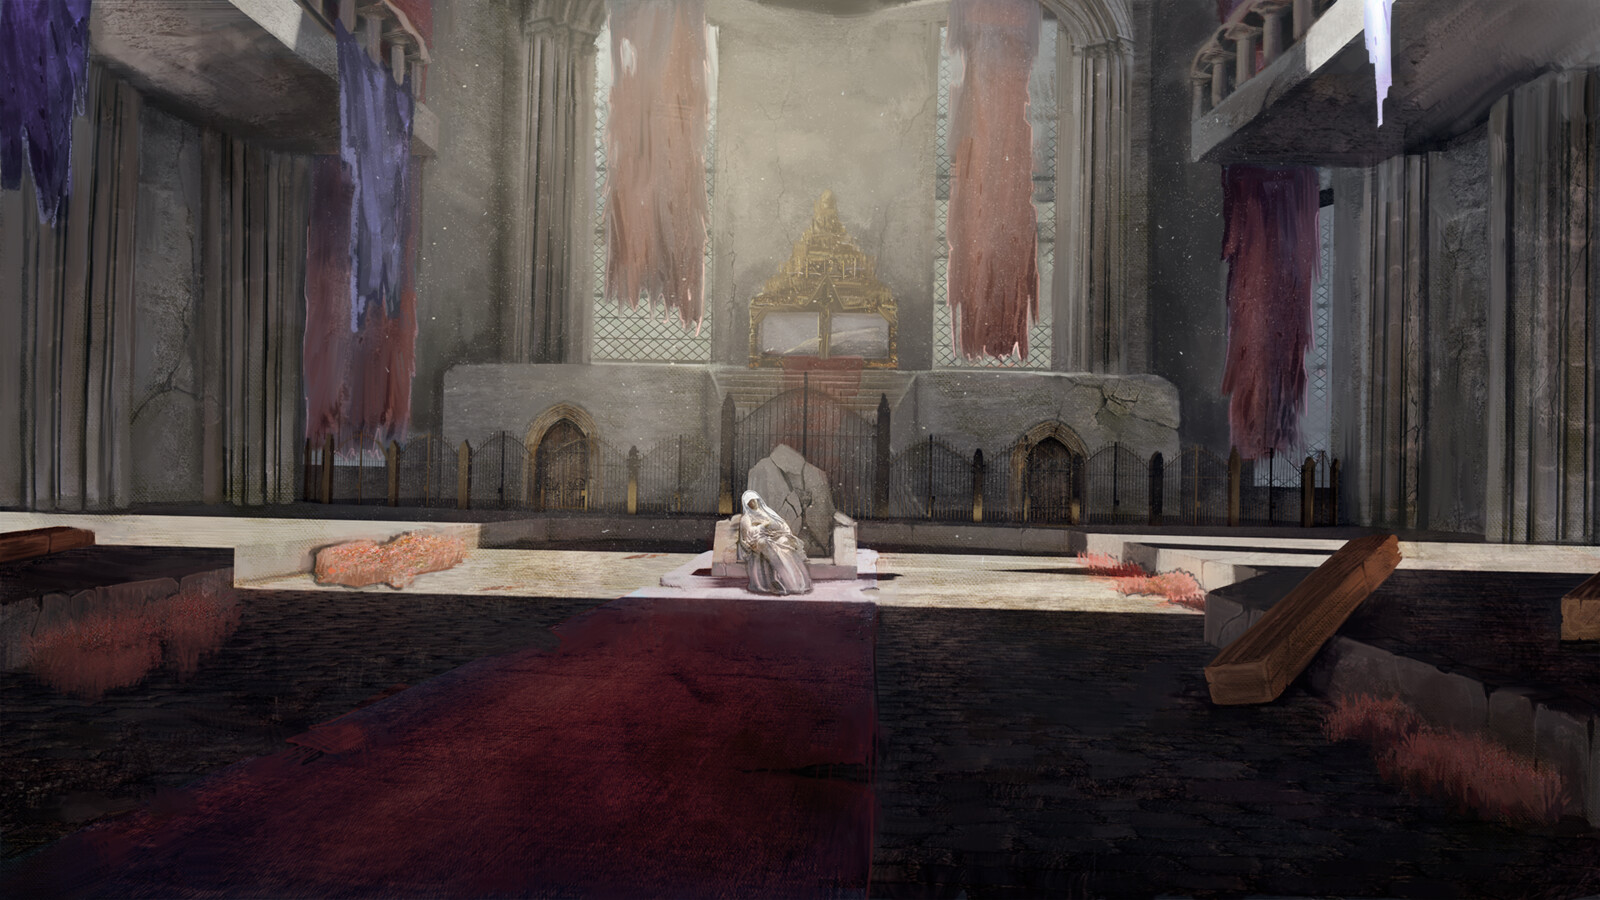 """Carim Temple inside view + hypothetical boss character """"The Blind Maiden"""""""